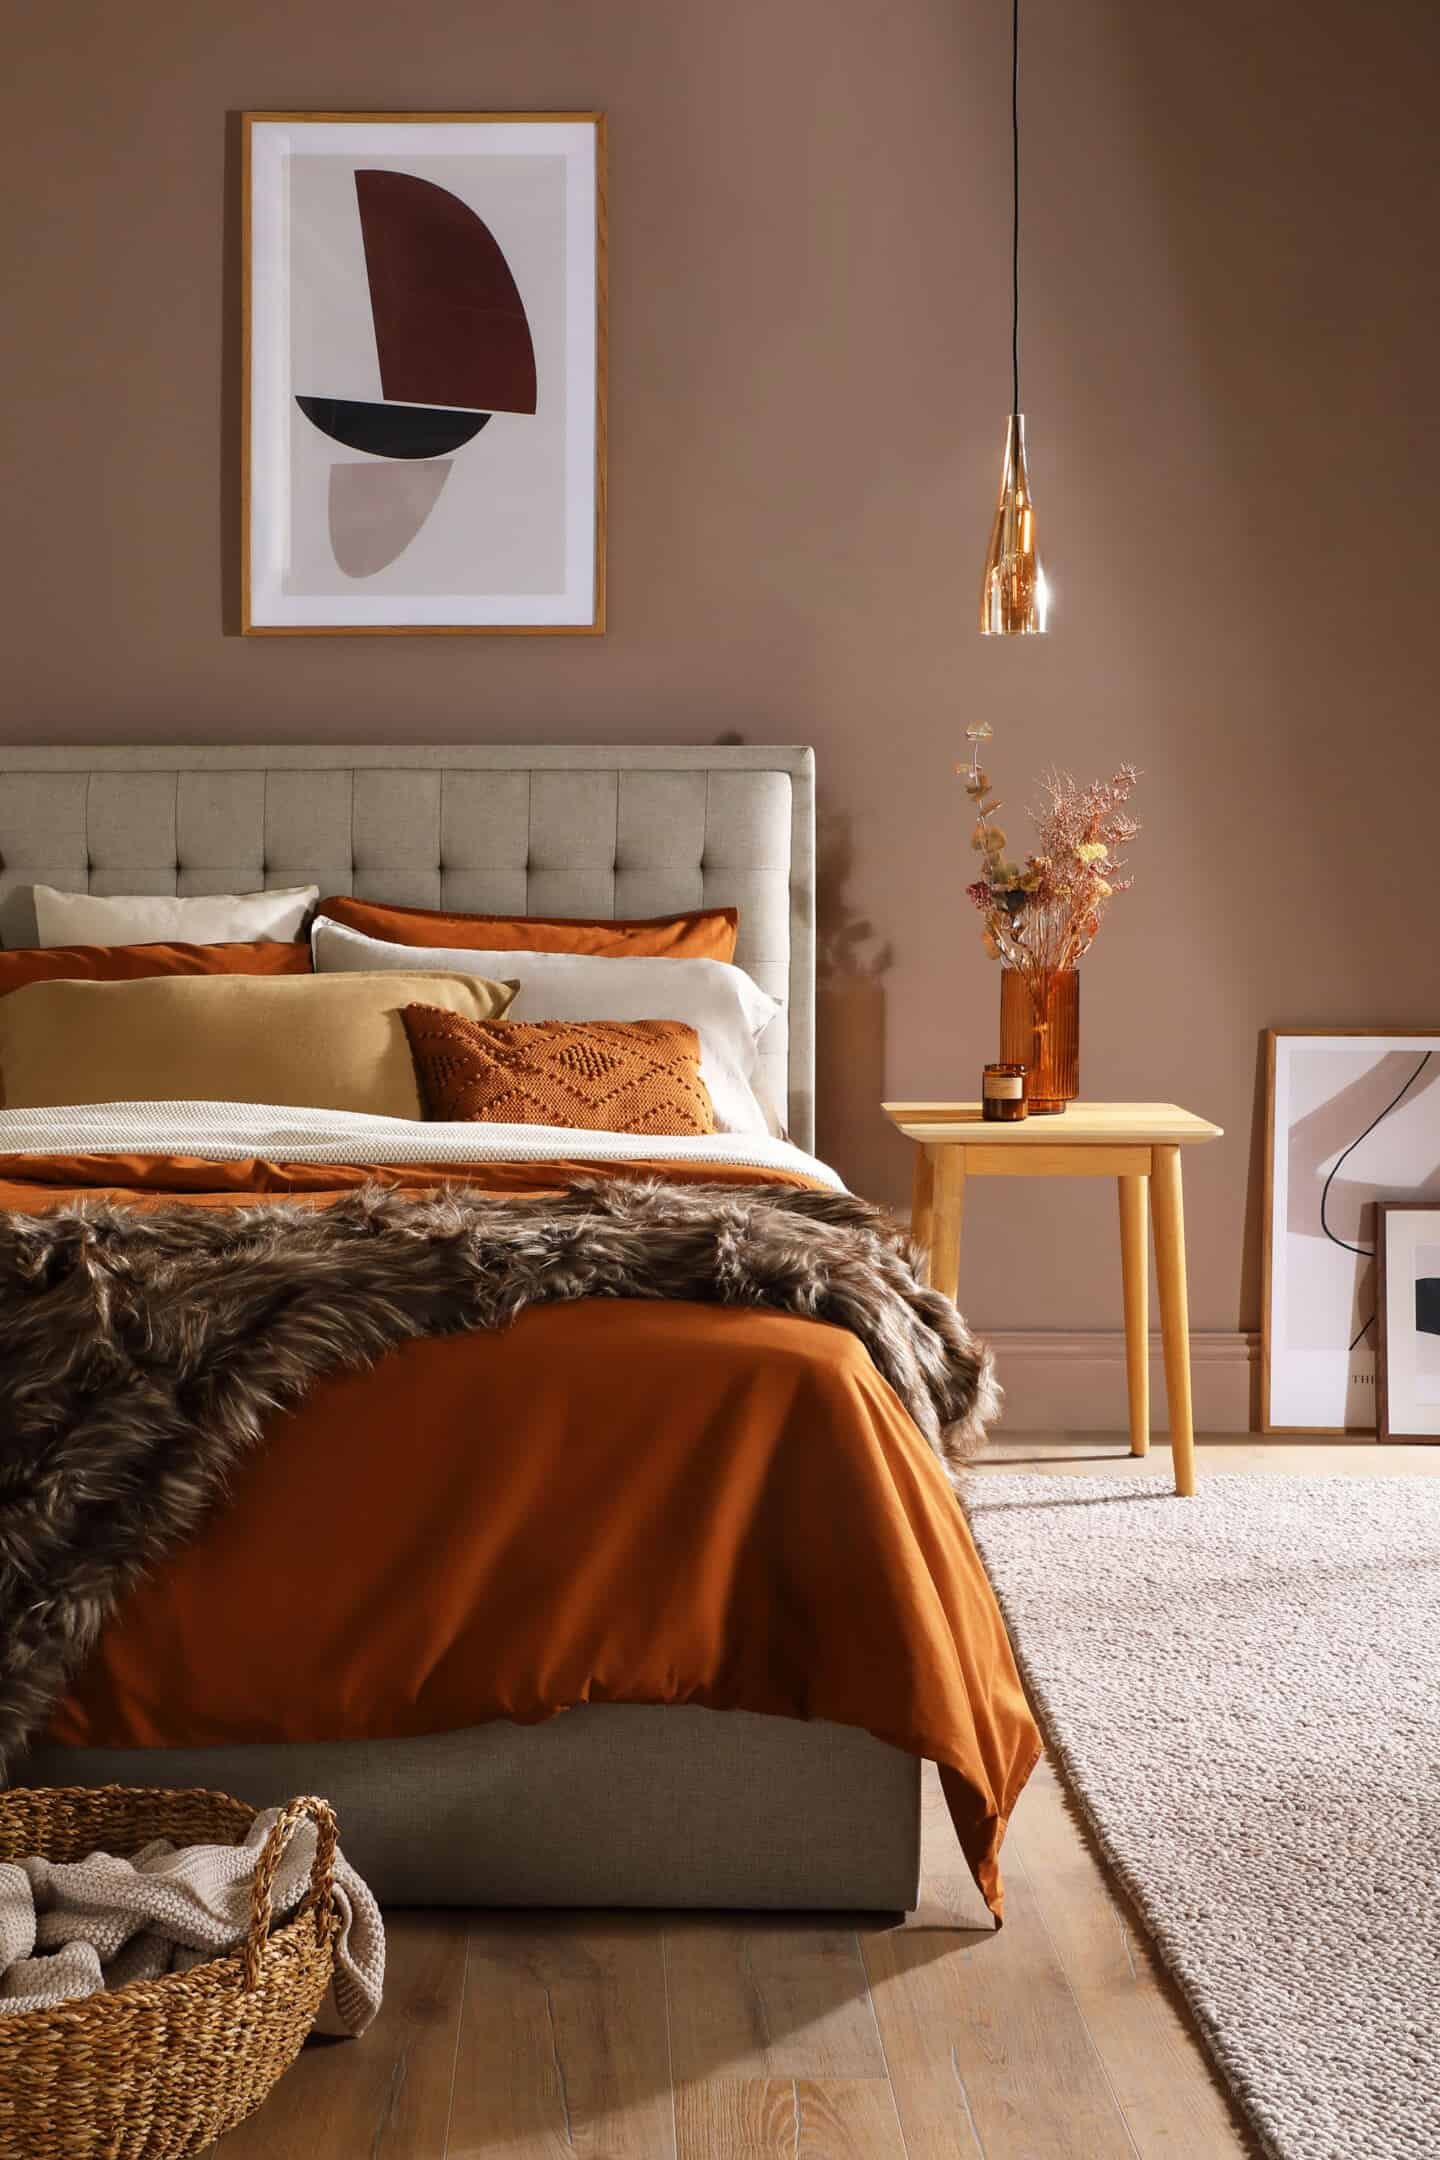 Autumnal Hues in interiors - A beautiful bedroom packed full of bold autumn colours and tactile textures.